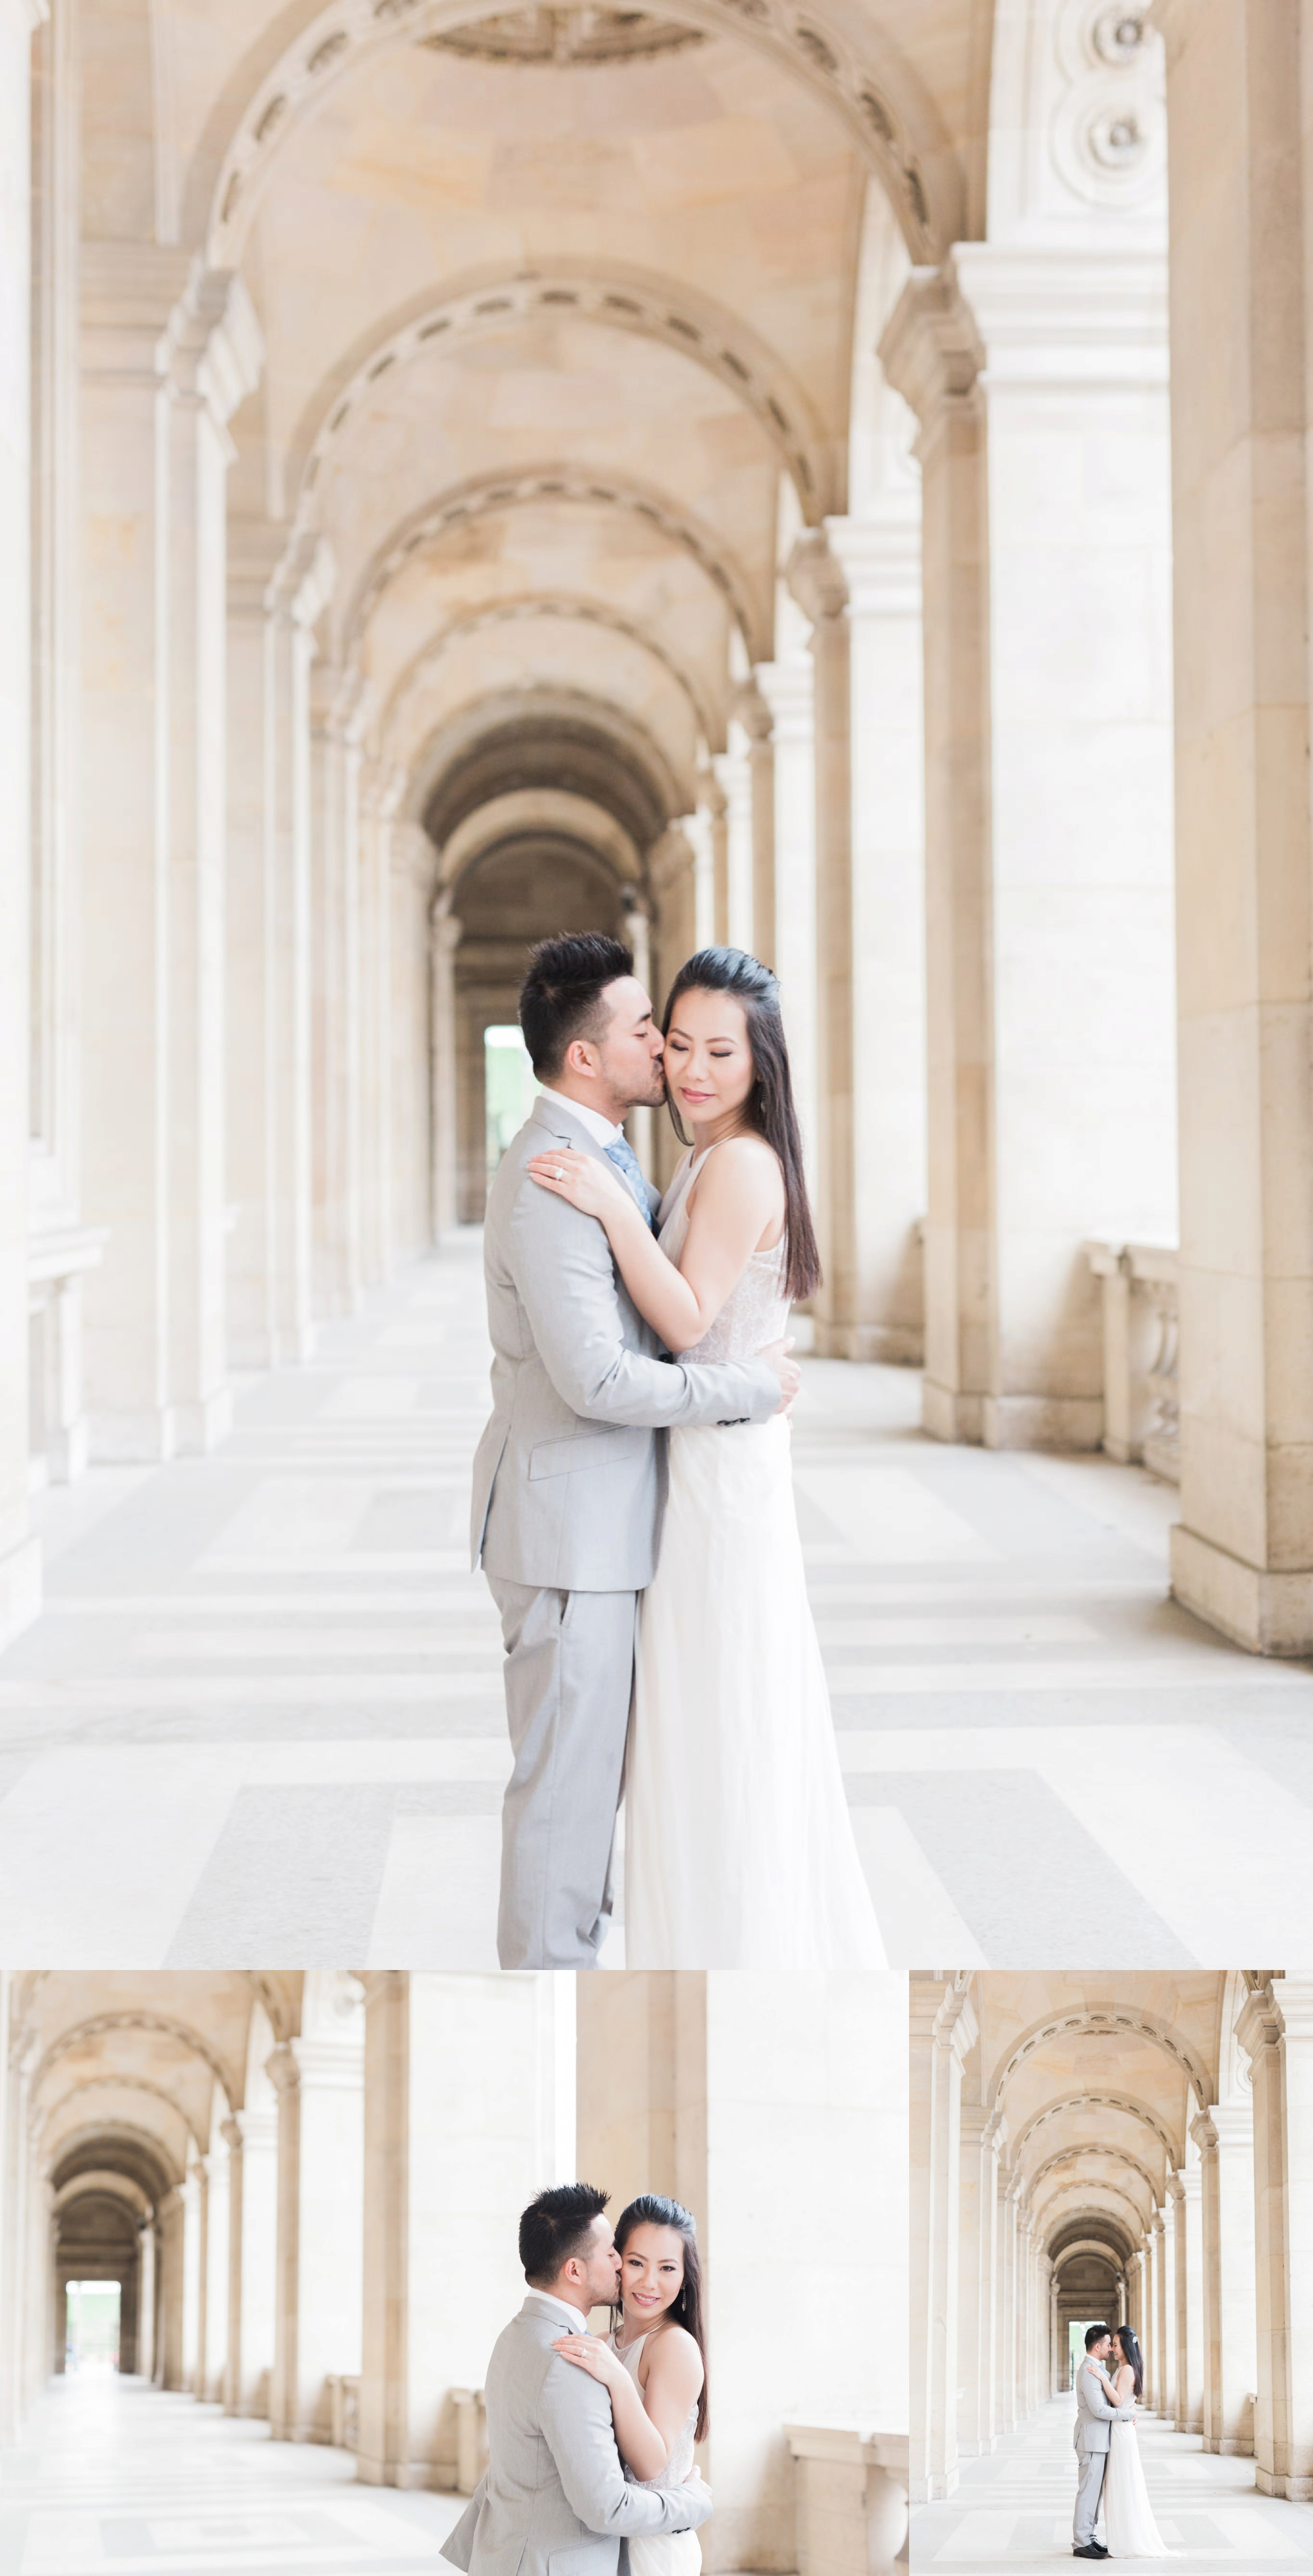 Suzanne_li_photography_paris_engagement_shoot_0001.jpg